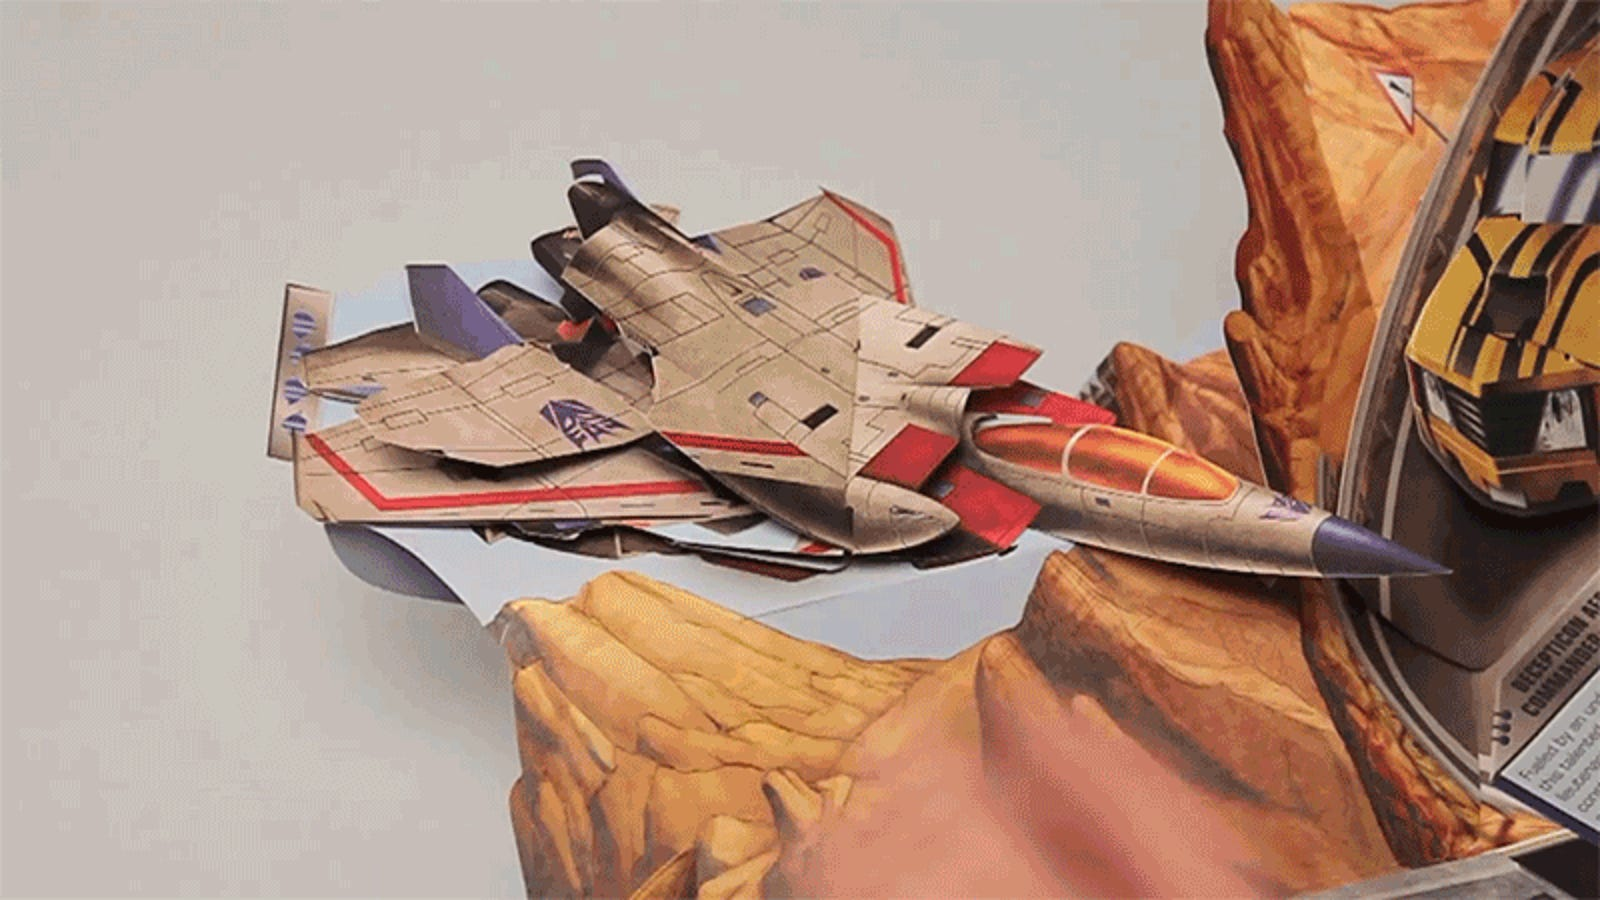 Transformers Pop-Up Book Features Paper Robots That Actually Transform